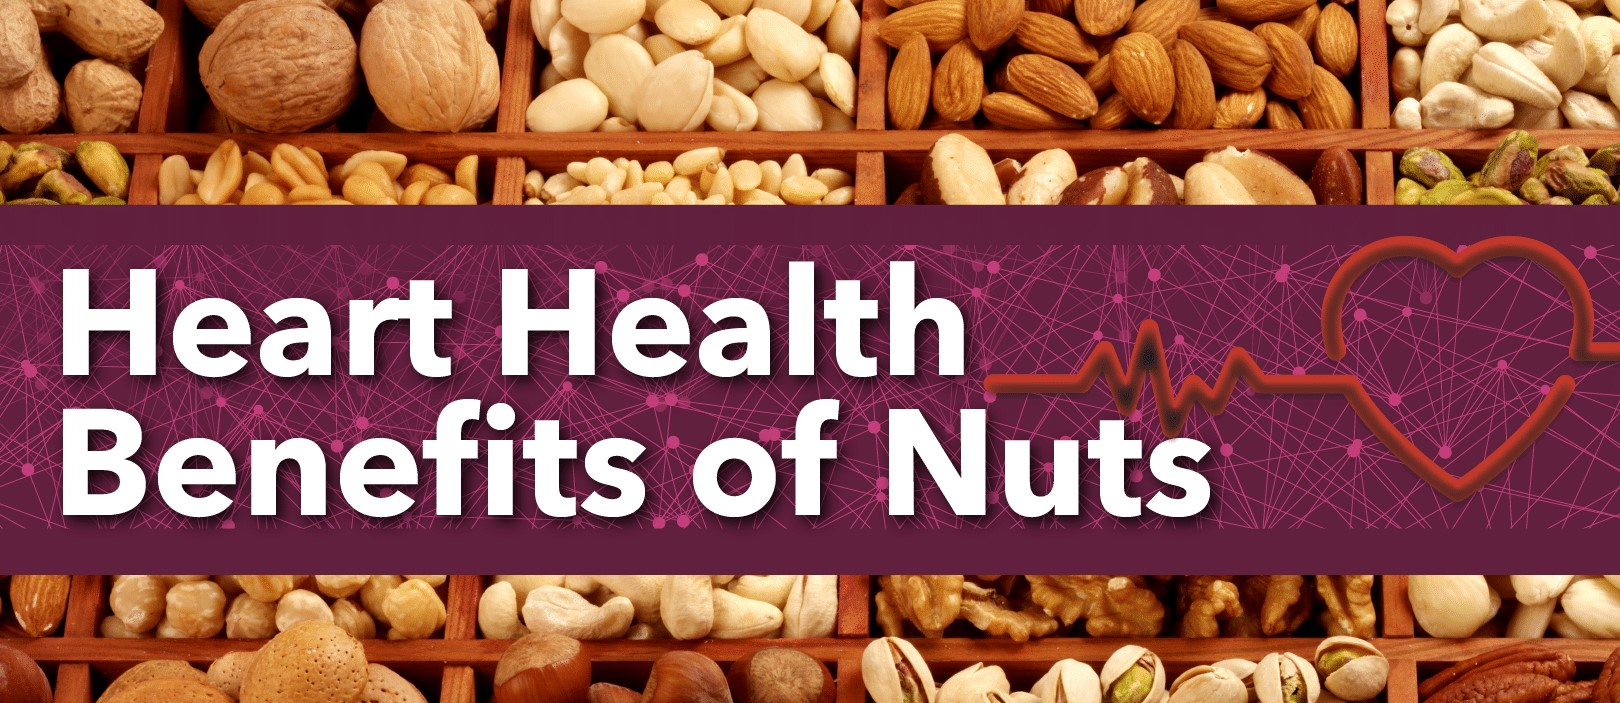 2 Heart-Health-Benefits-of-Nuts-01-Blog